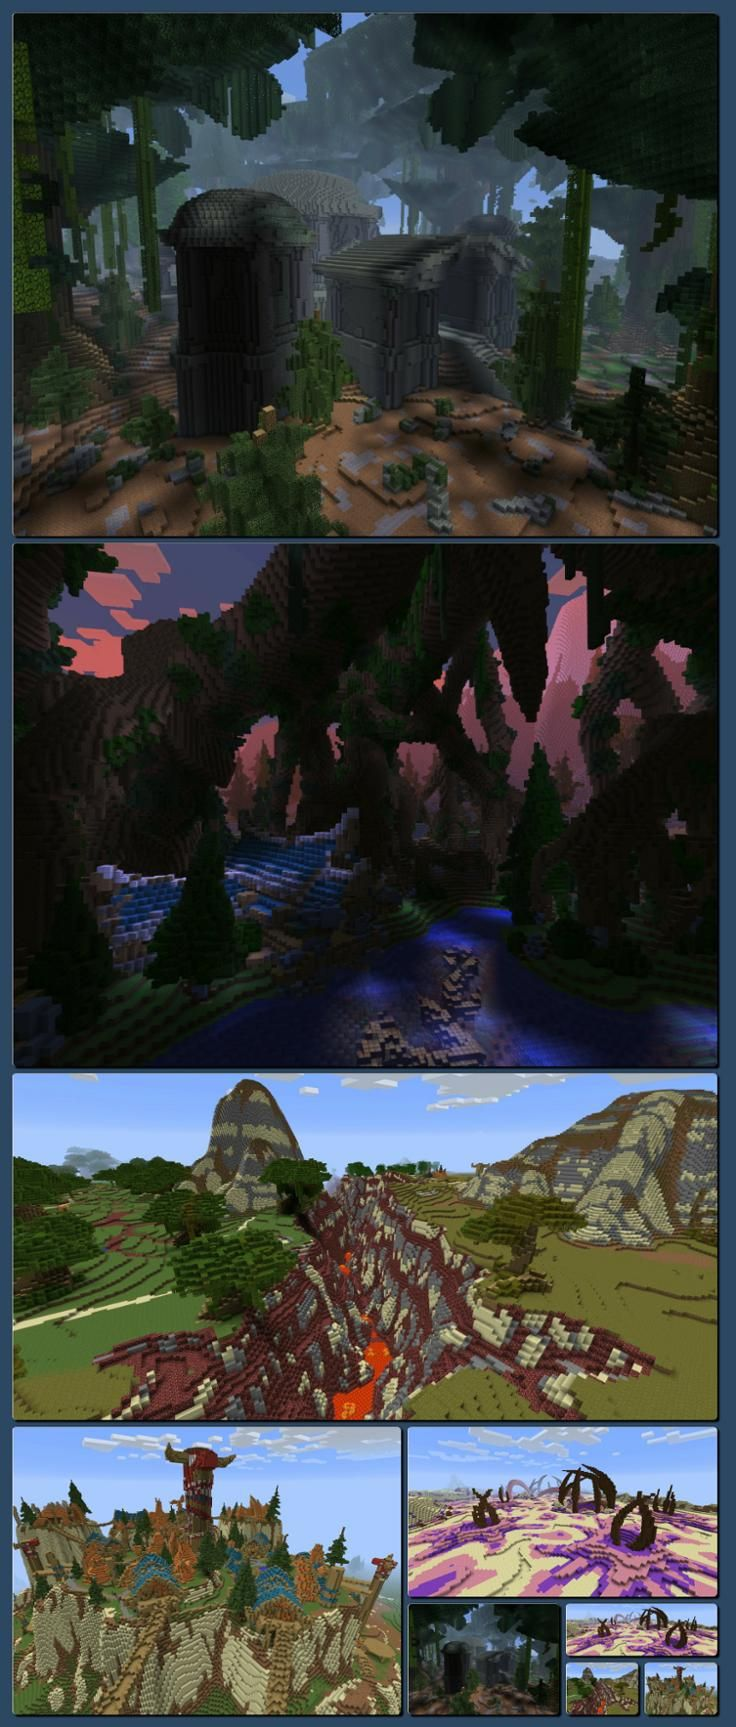 Industrious Minecraft Player Builds a 1:1 Scale World of Warcraft Map [Collage made with one click using http://pagecollage.com] #pagecollage